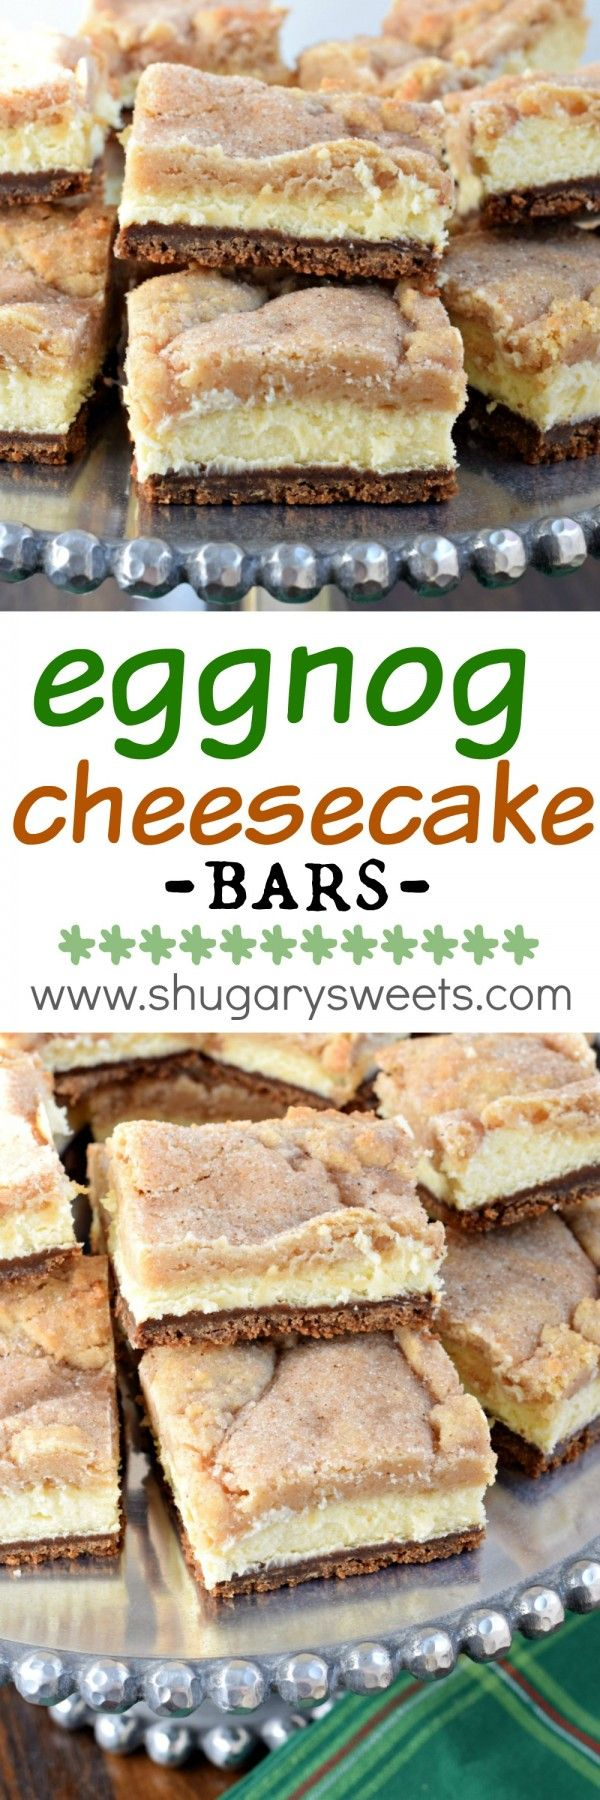 Layered Eggnog Cheesecake bars with a gingersnap crust, creamy cheesecake filling and snickerdoodle cookie topping! This is the ultimate dessert recipe, and it's easy enough to make!